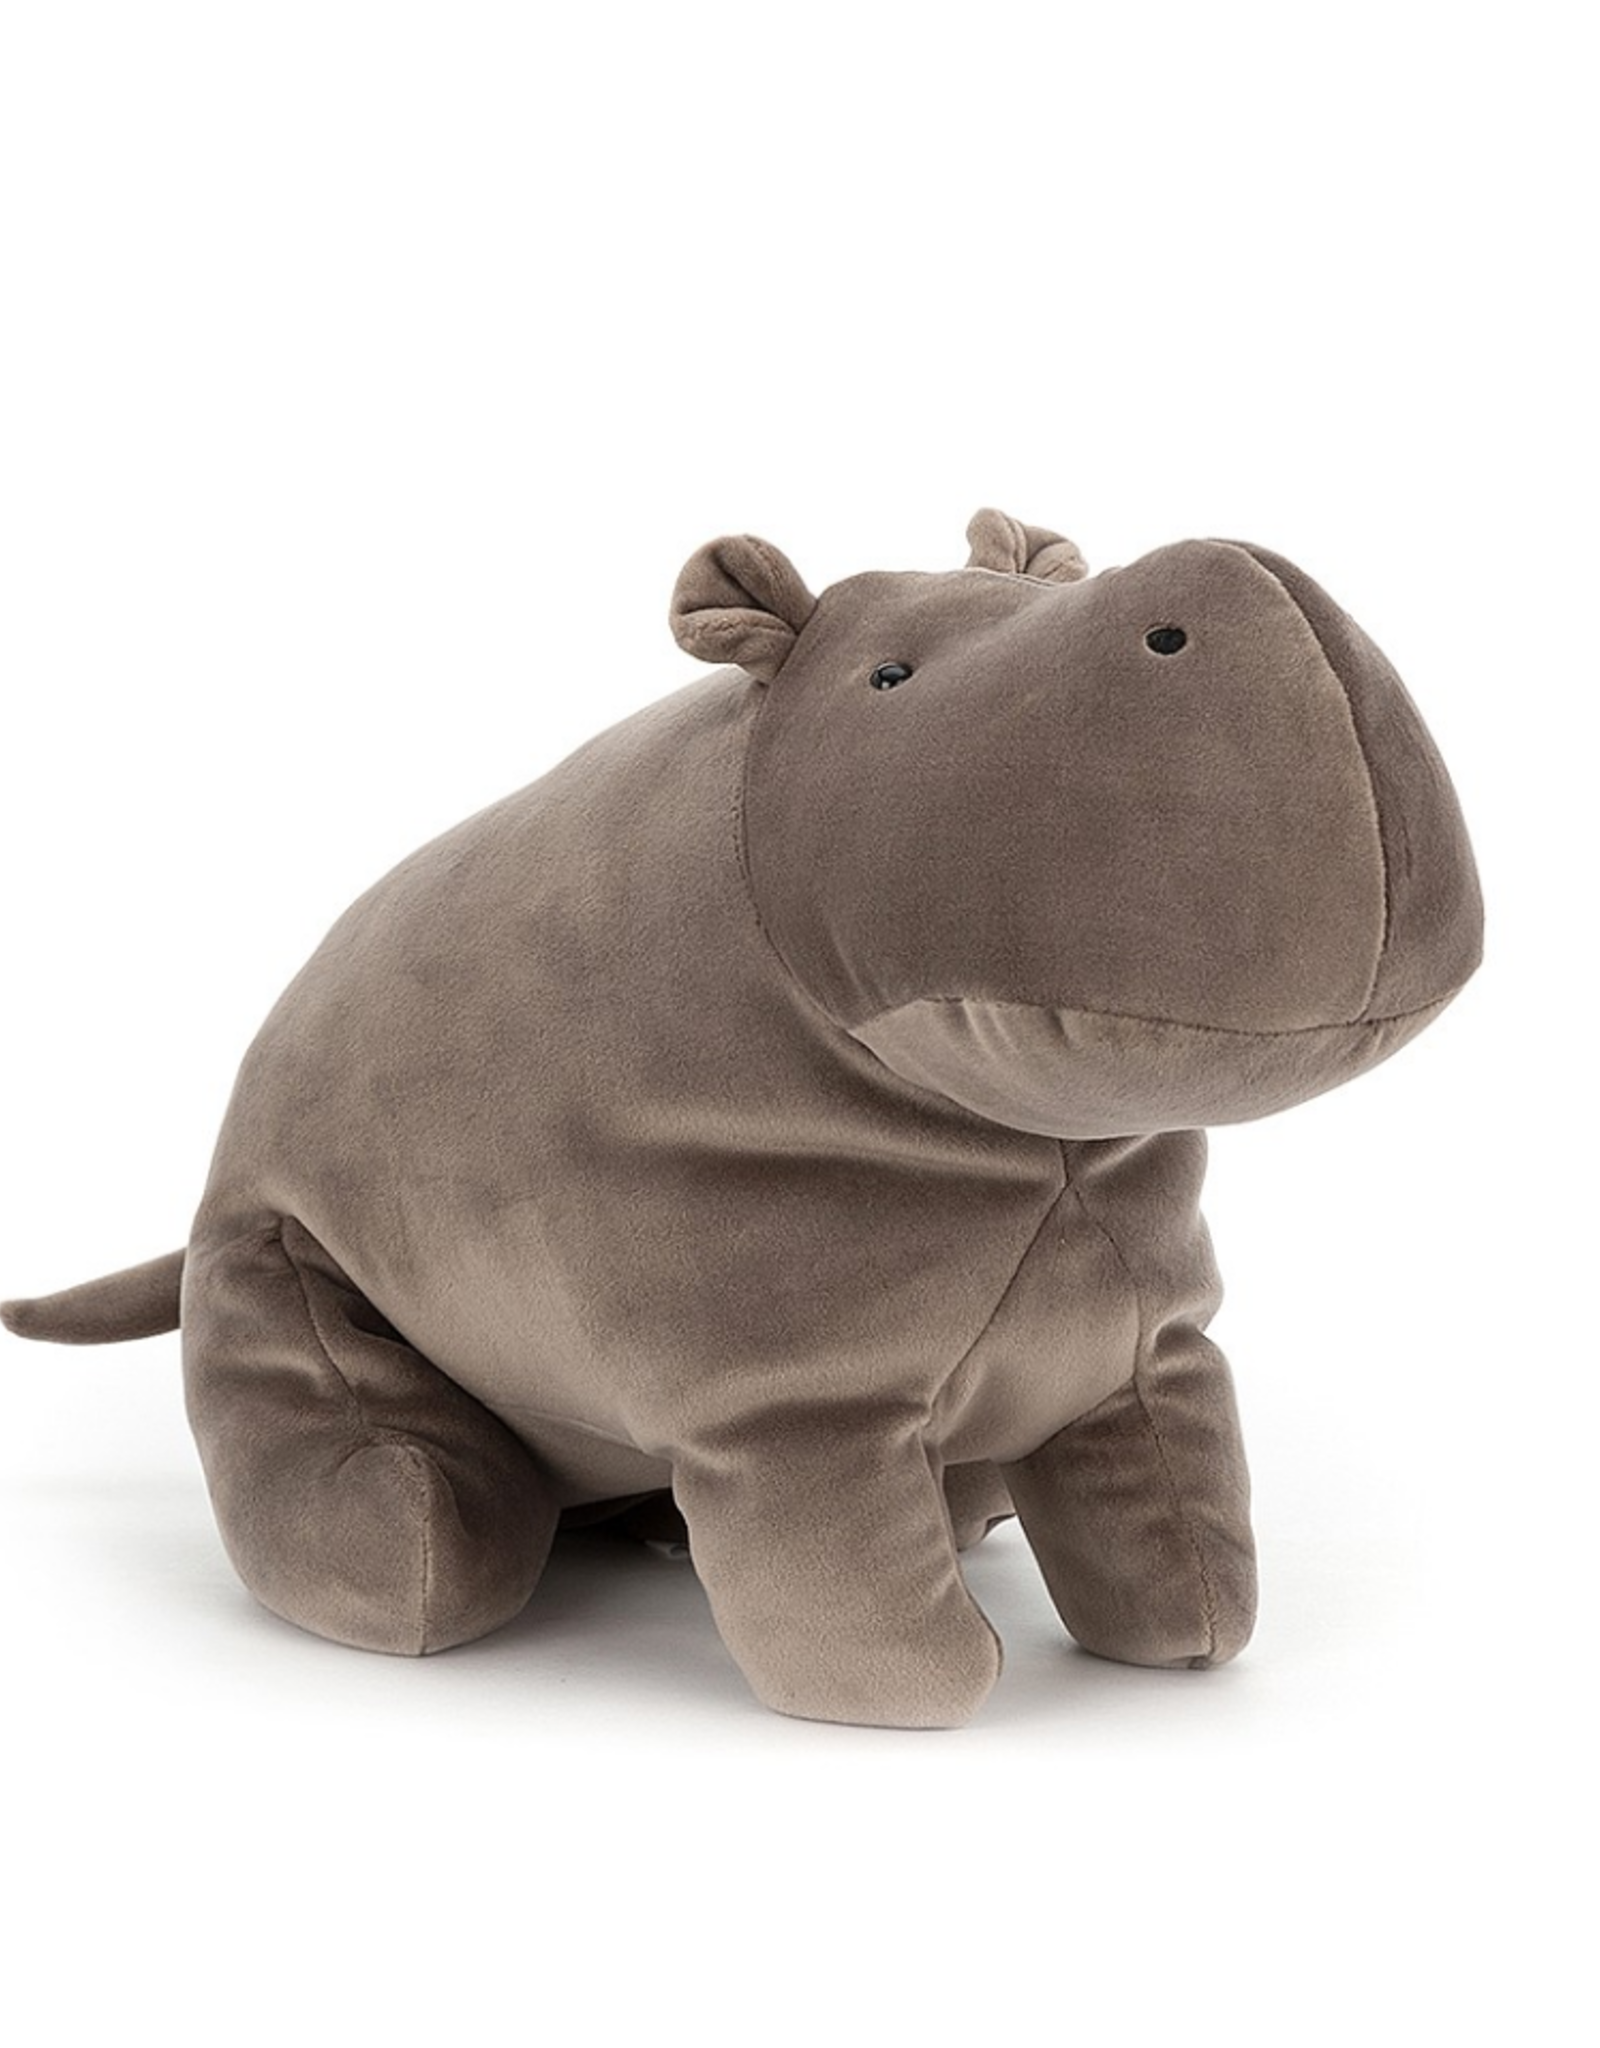 JellyCat - Mellow Mallow Hippo - Large